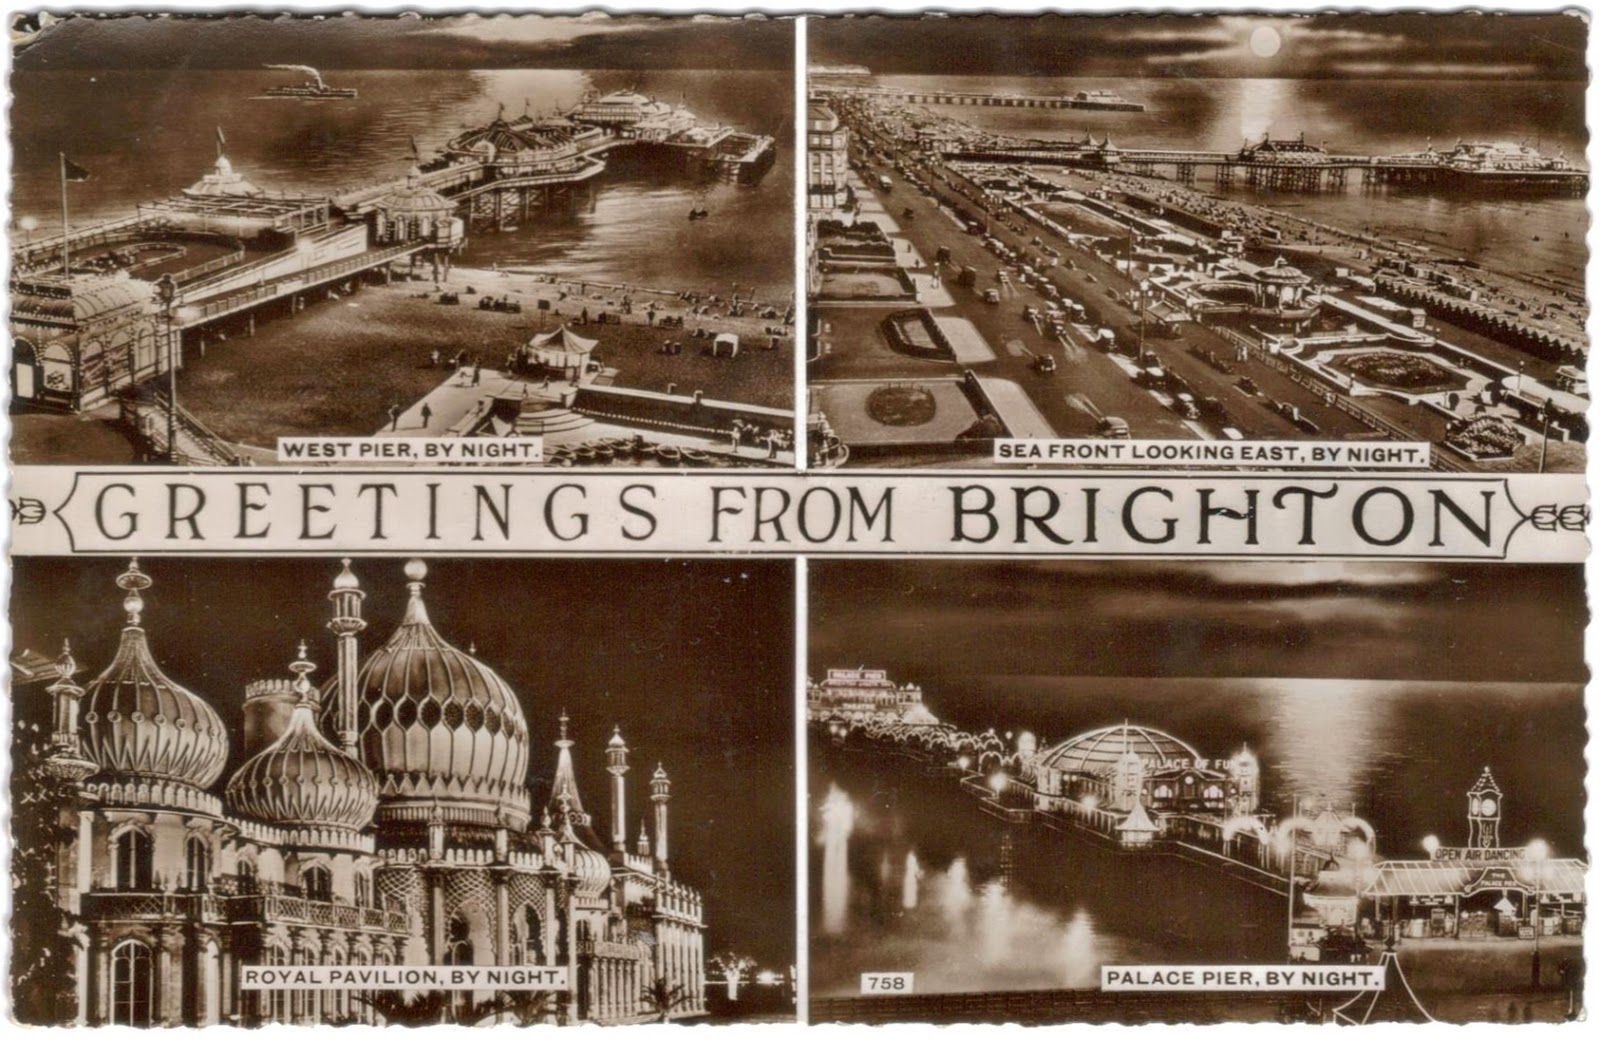 1950s postcard from Brighton